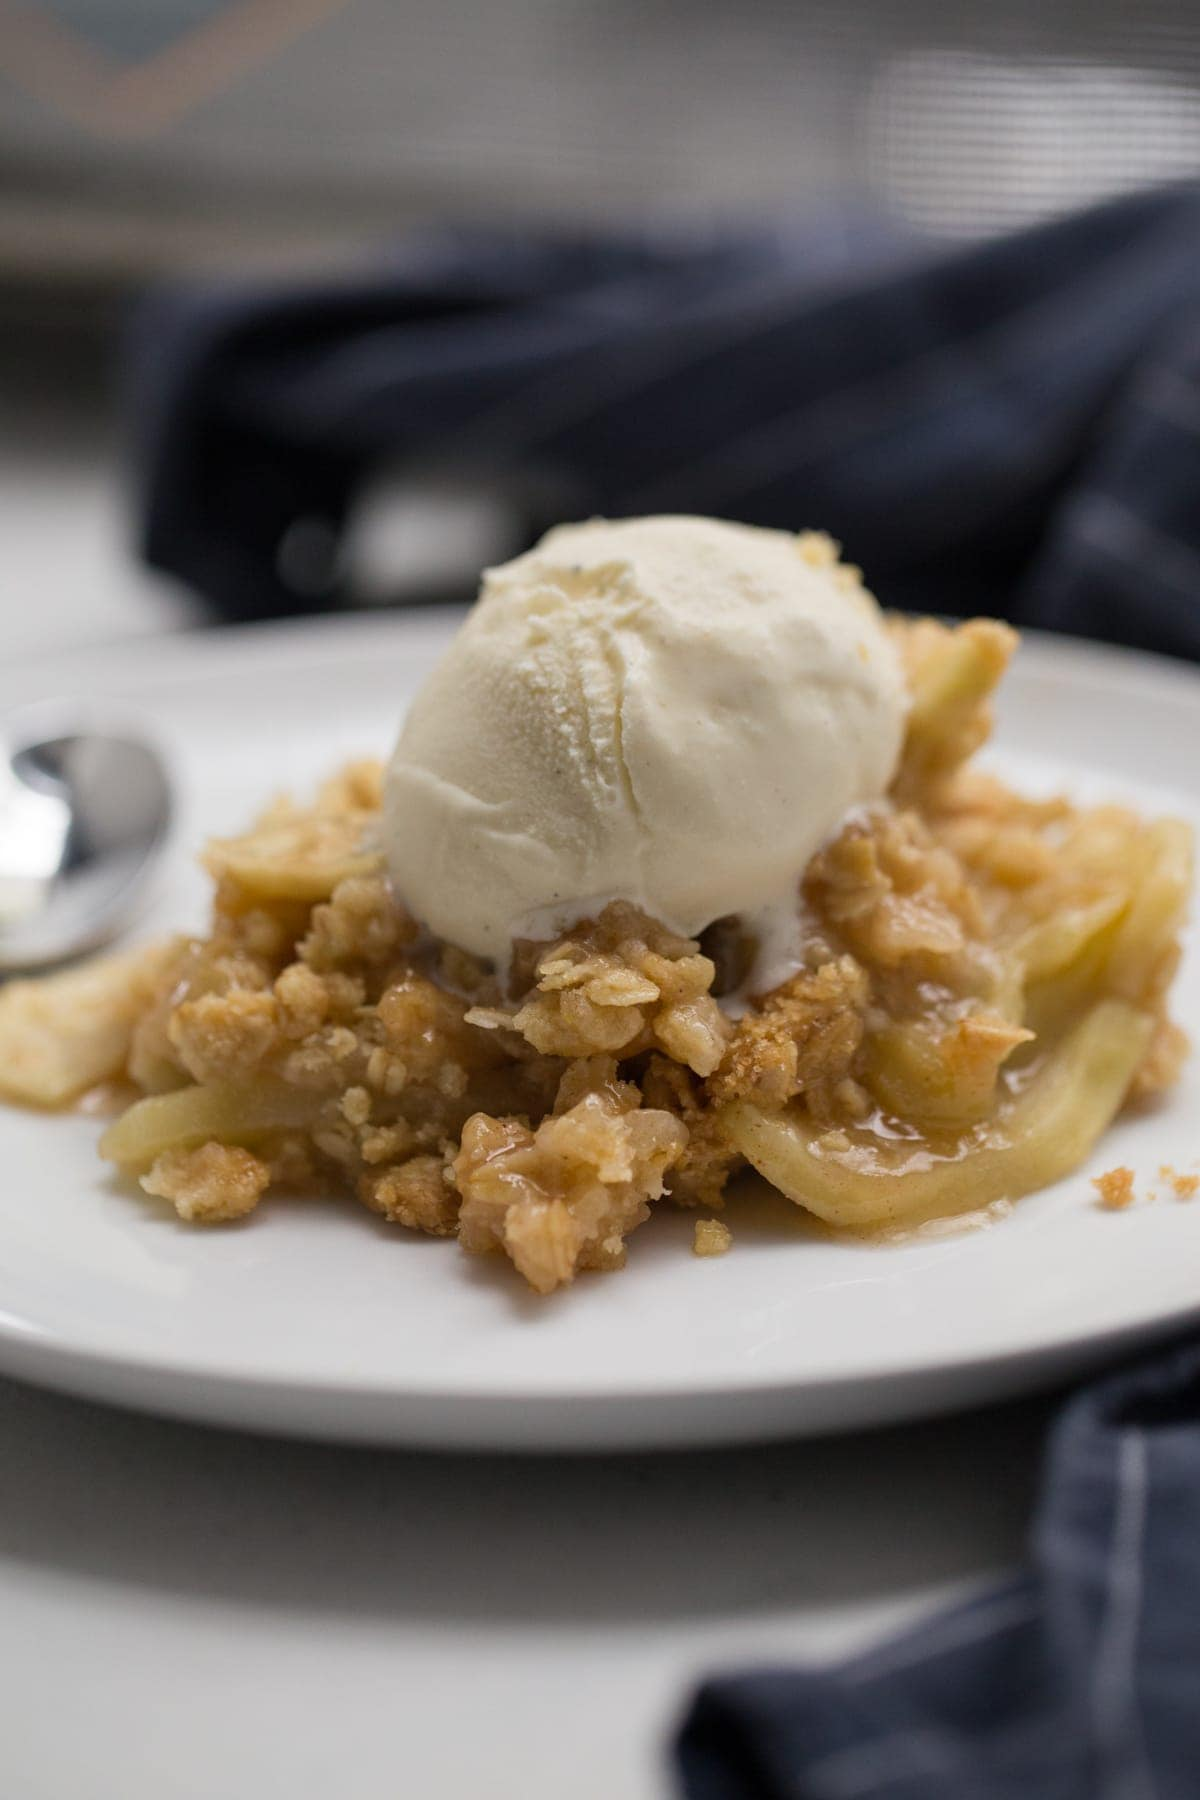 Apple crisp with vanilla ice cream on top